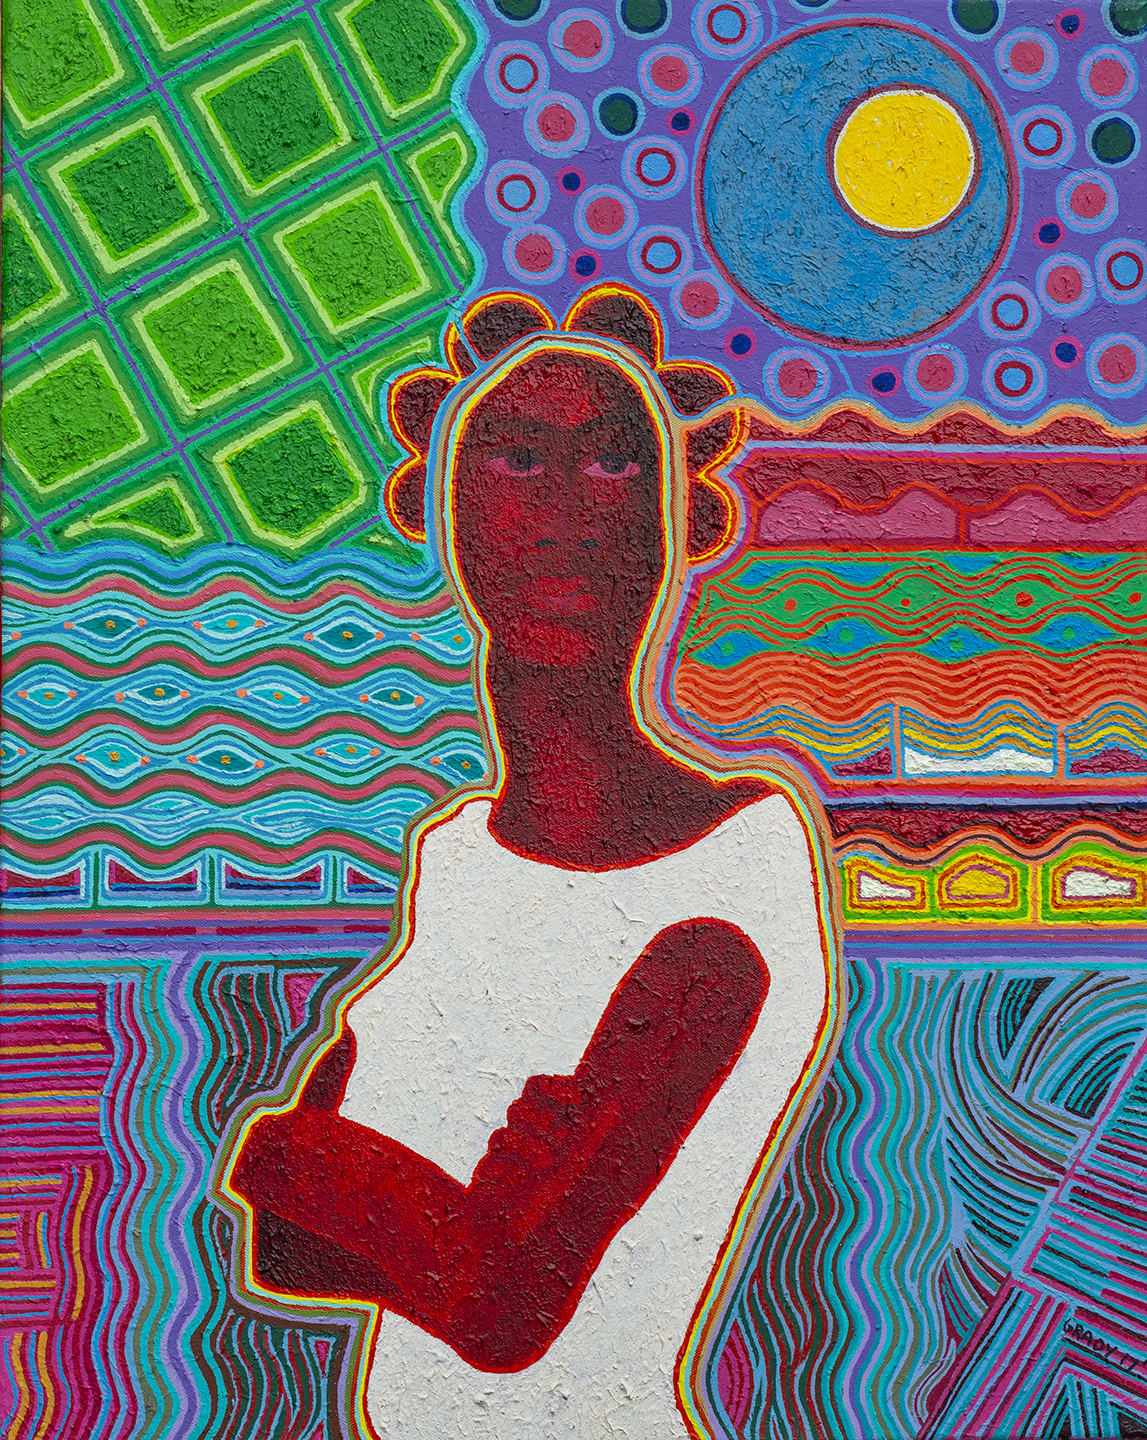 A painting of dark-skinned figure in a white tunic against a background of multiple brightly colored geometric textures